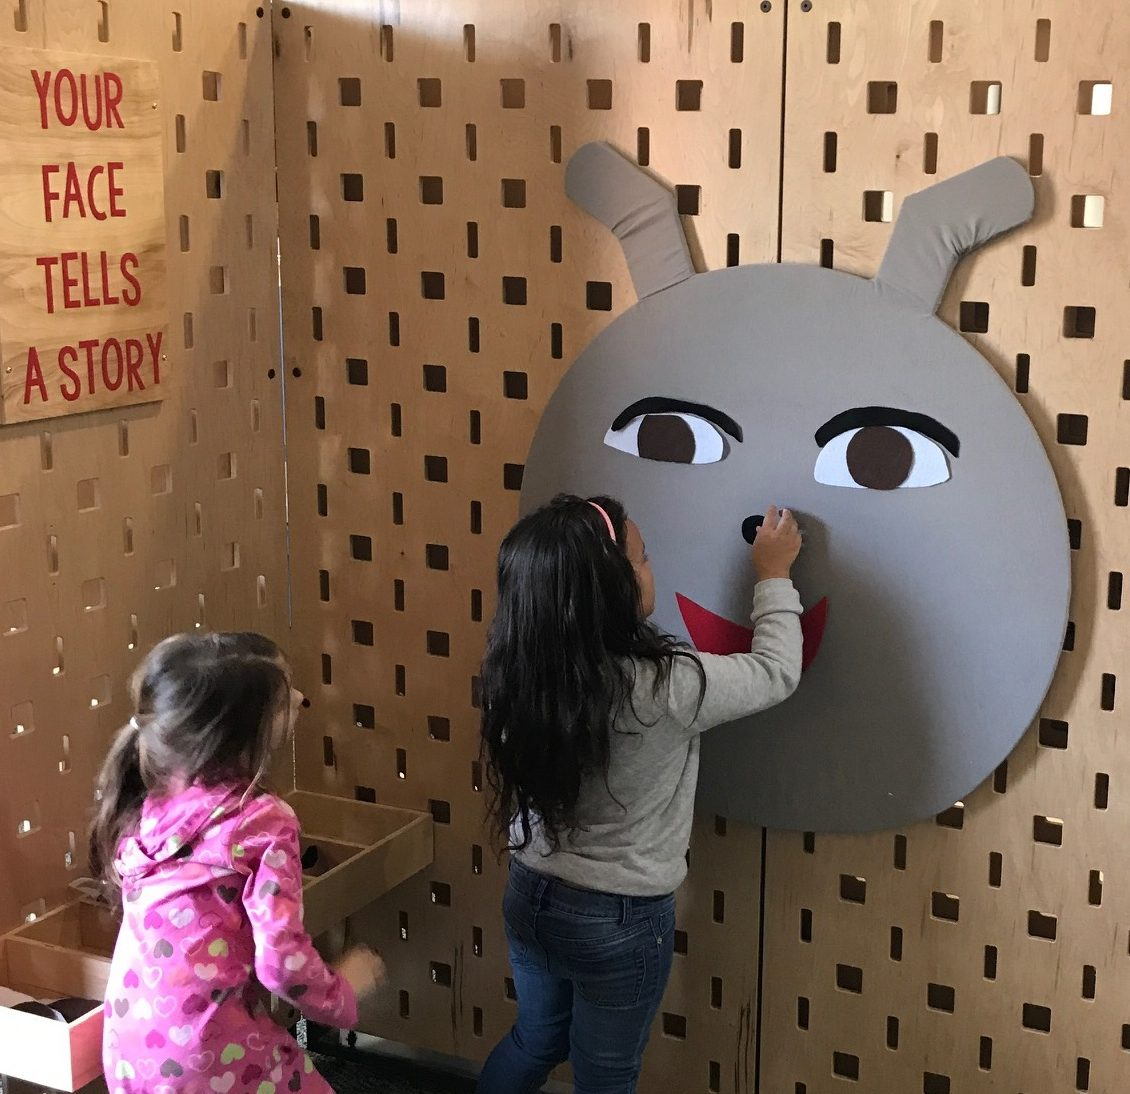 Children creating a giant face with felt shapes